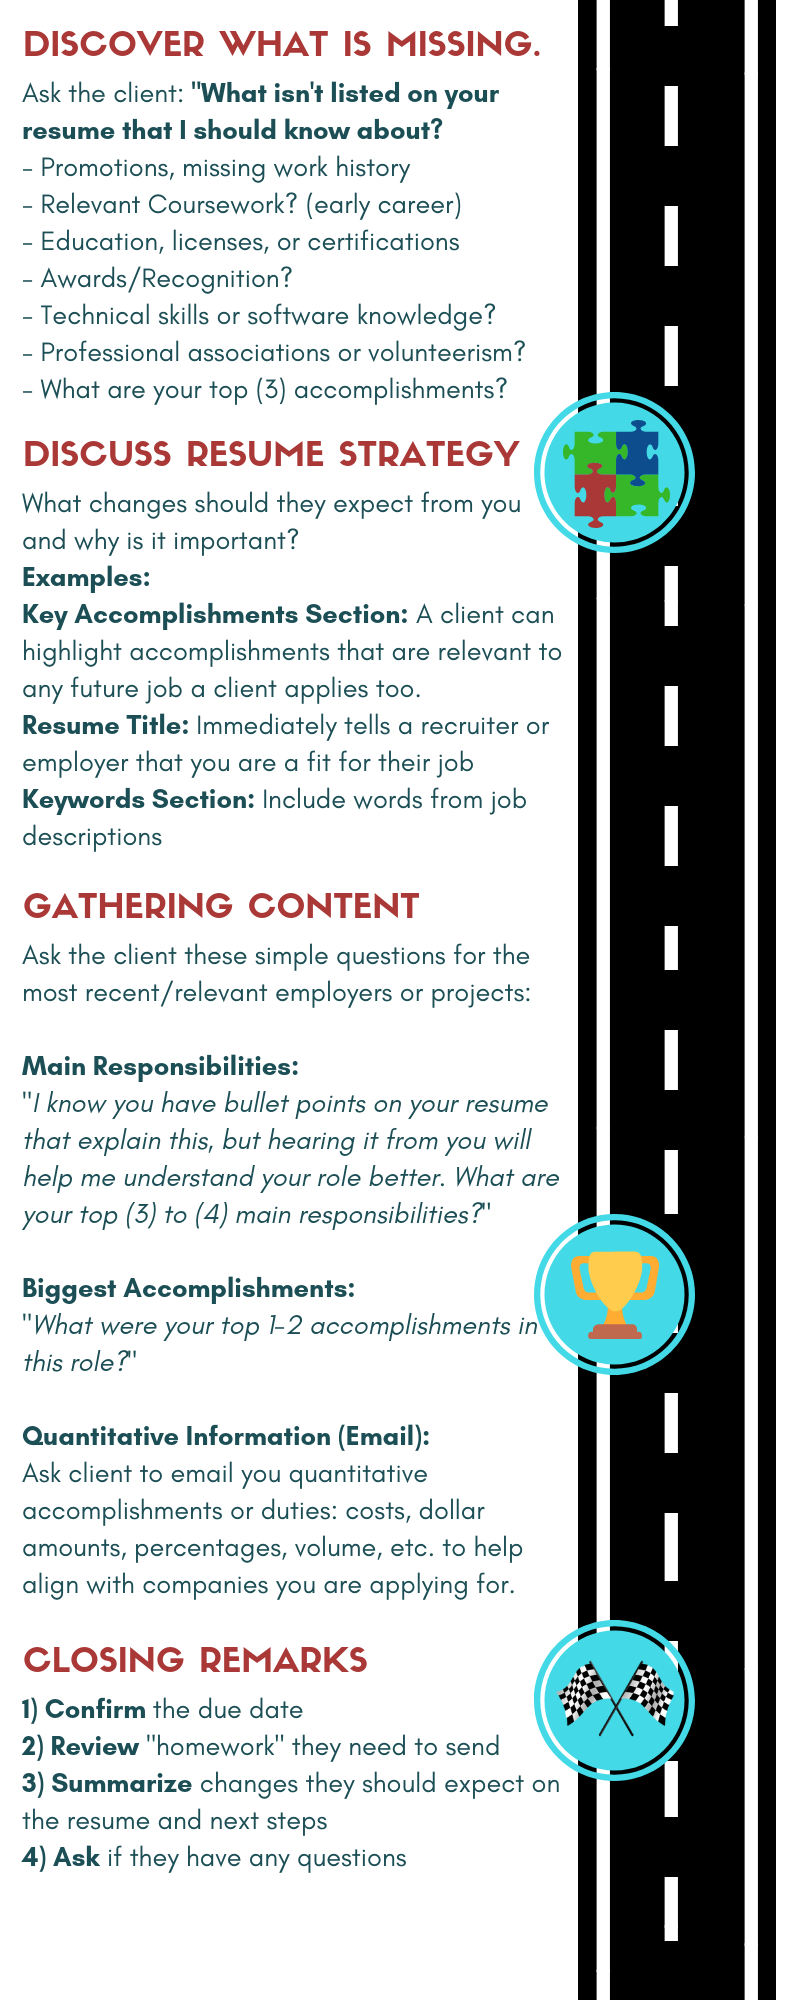 Resume Consultation Infographic (2).png